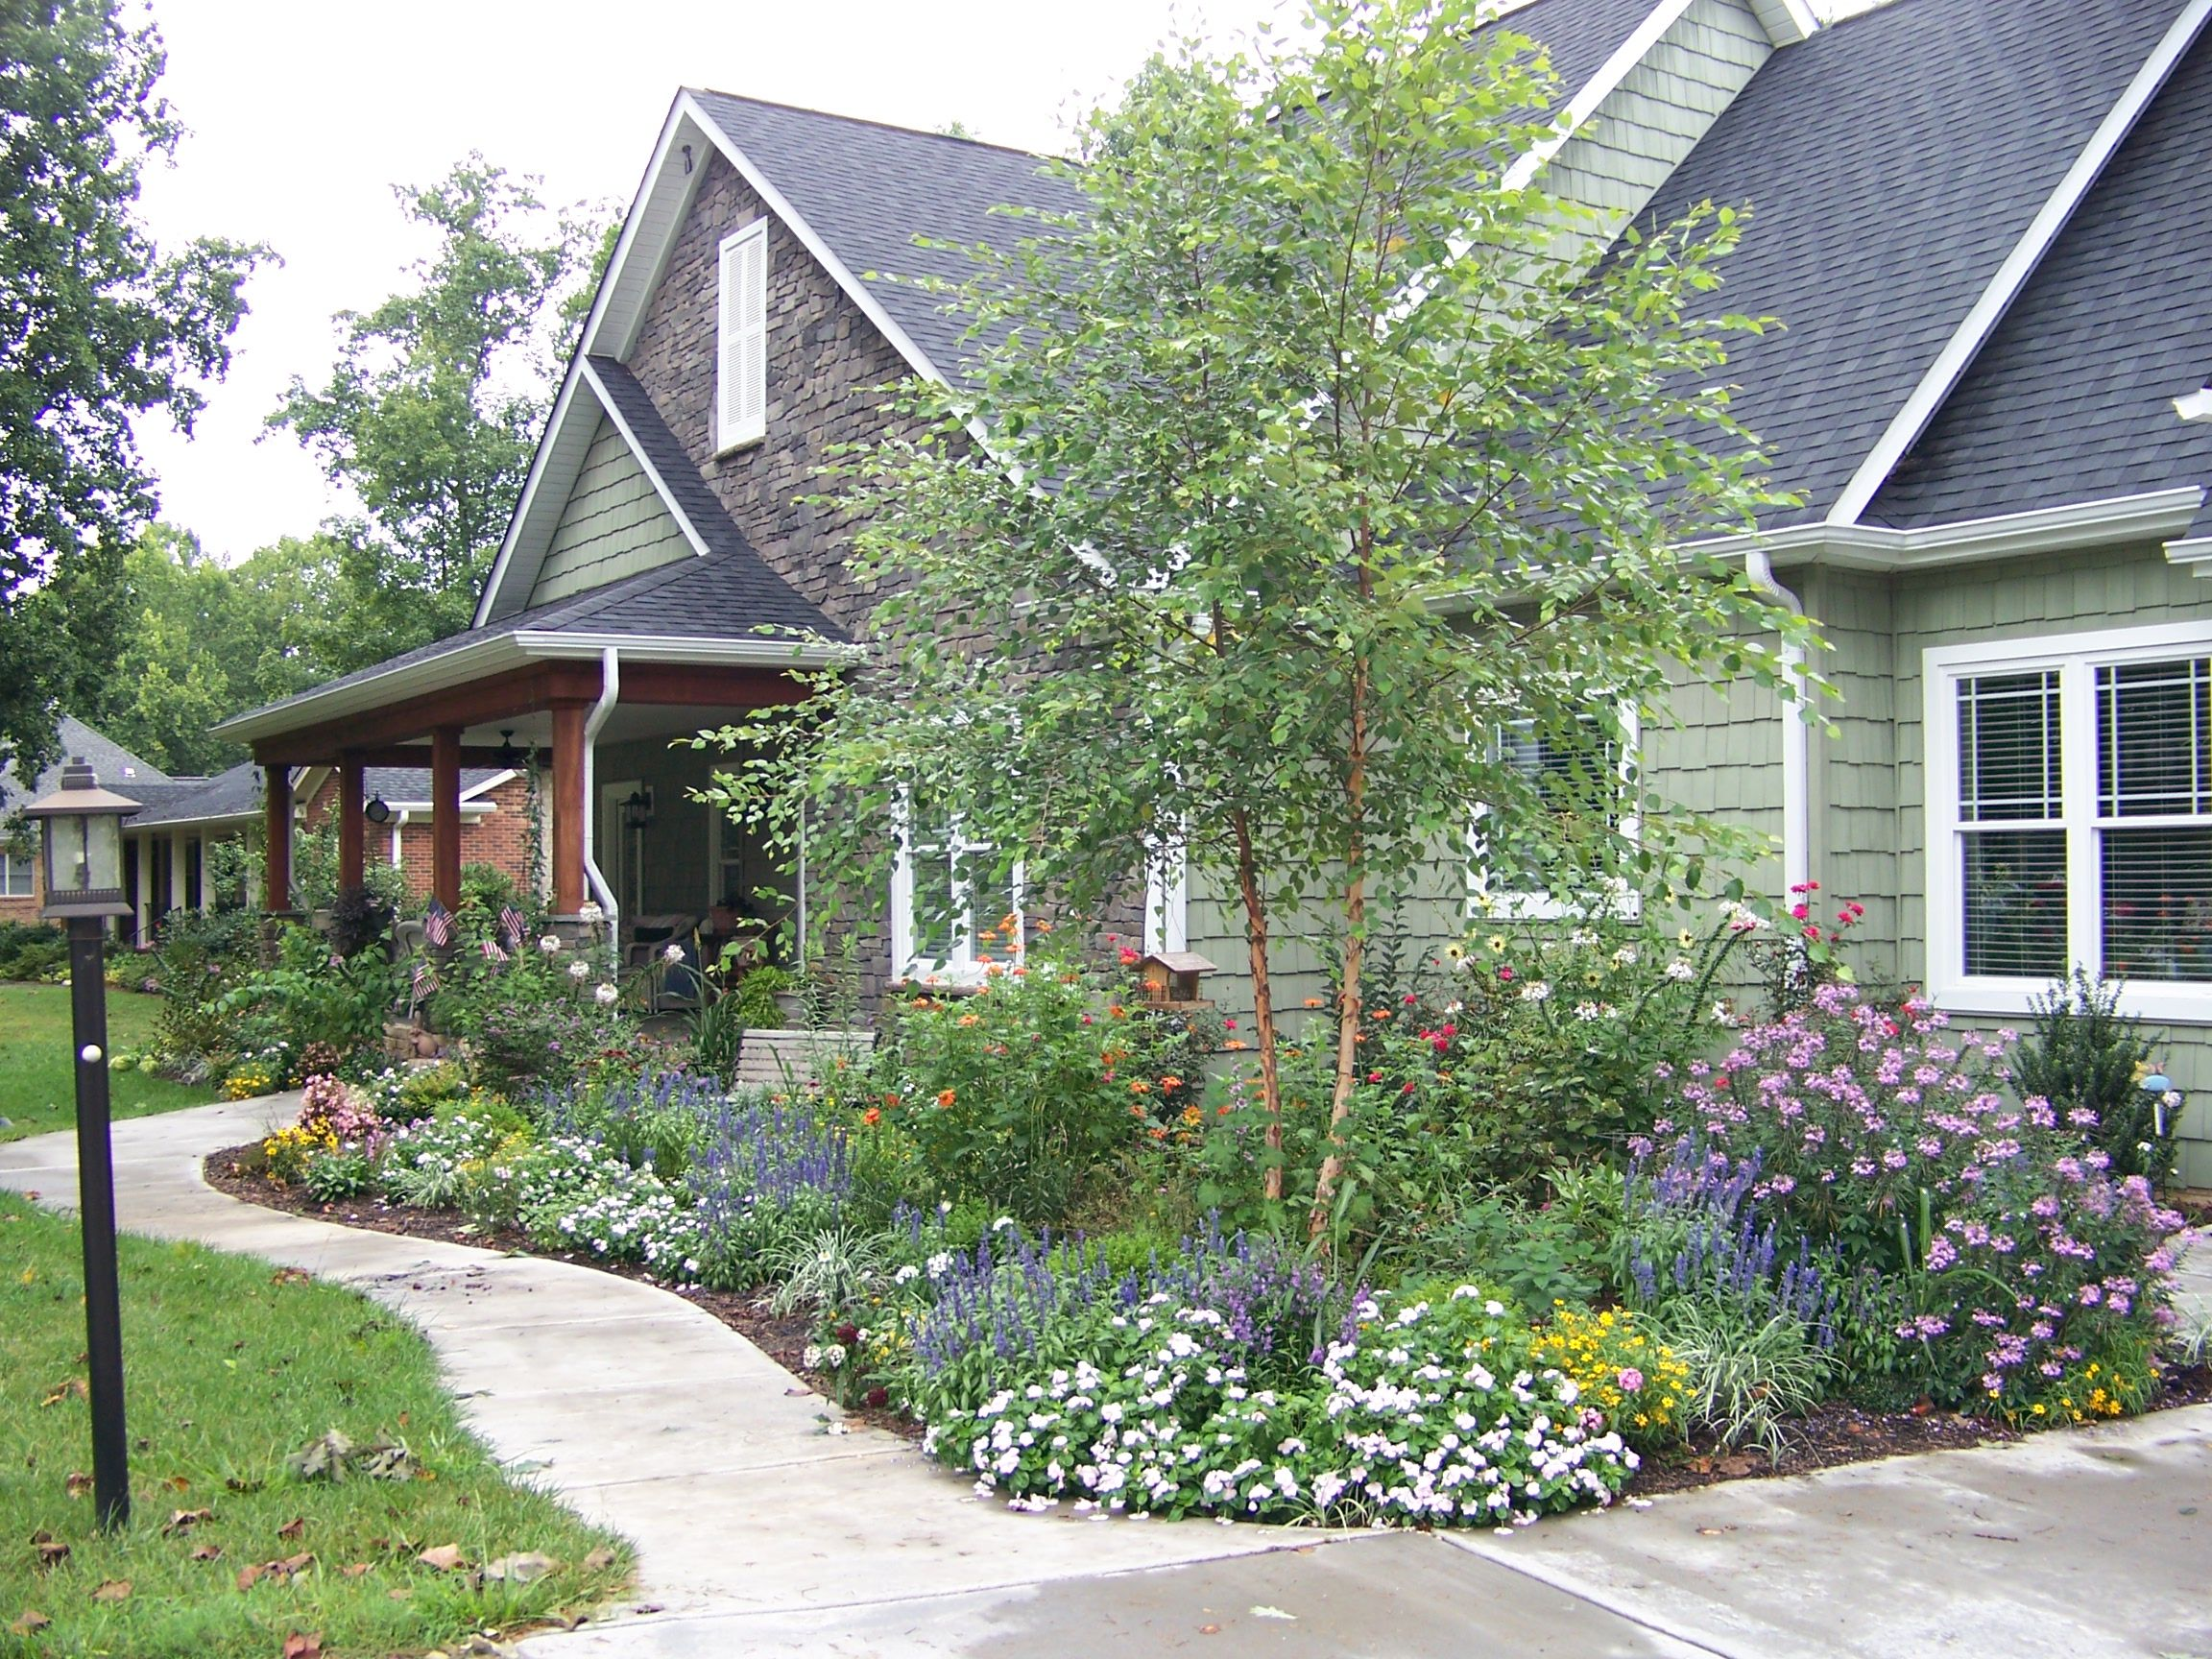 Landscape ideas landscape design forum gardenweb for Craftsman landscape design ideas